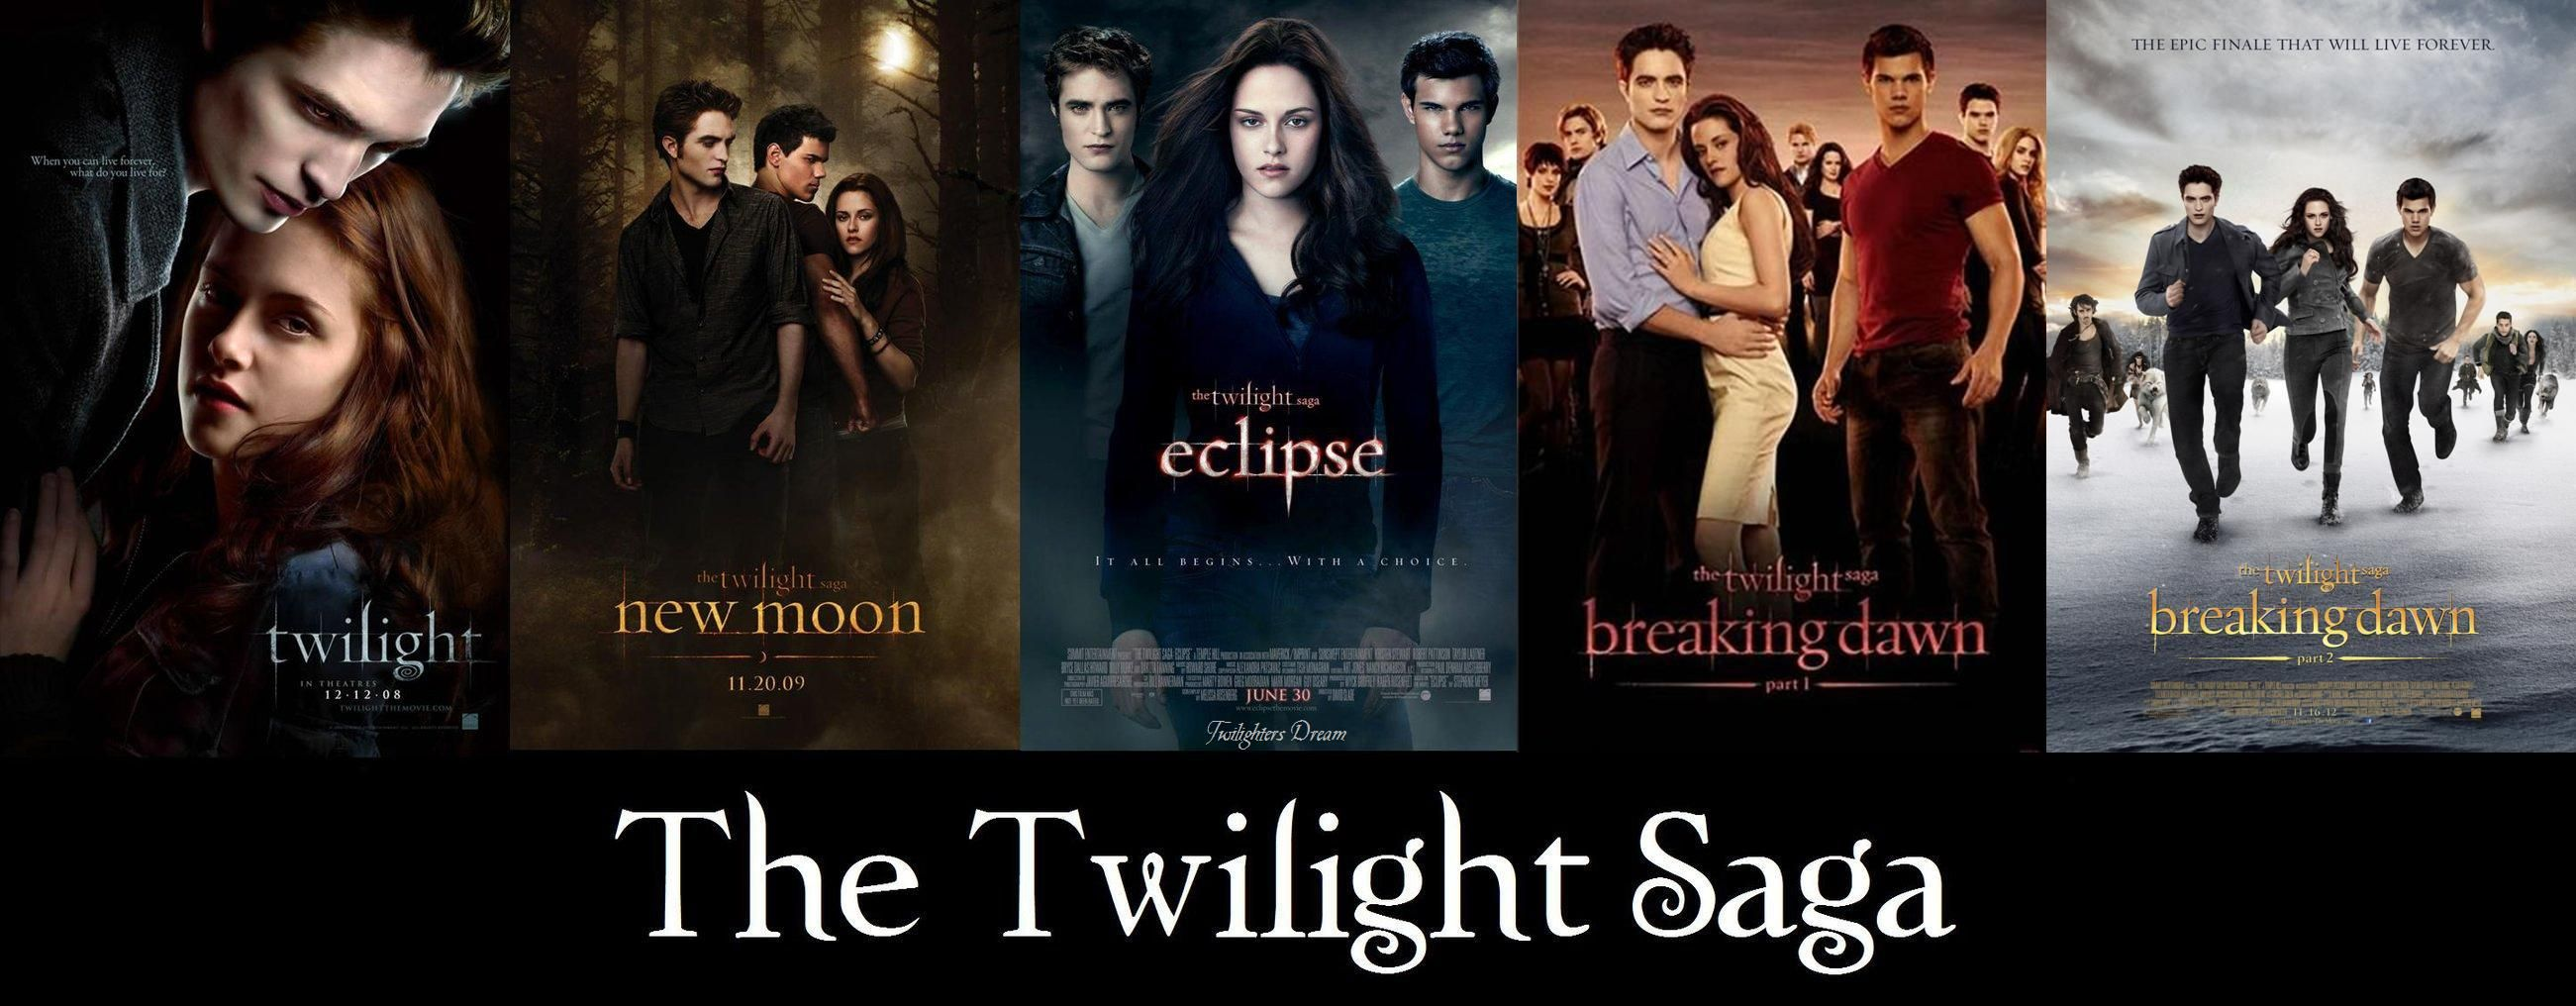 twilight saga thesis Essays and criticism on stephenie meyer's twilight - critical essays twilight's relationship to its genre context in the twilight saga mythos.